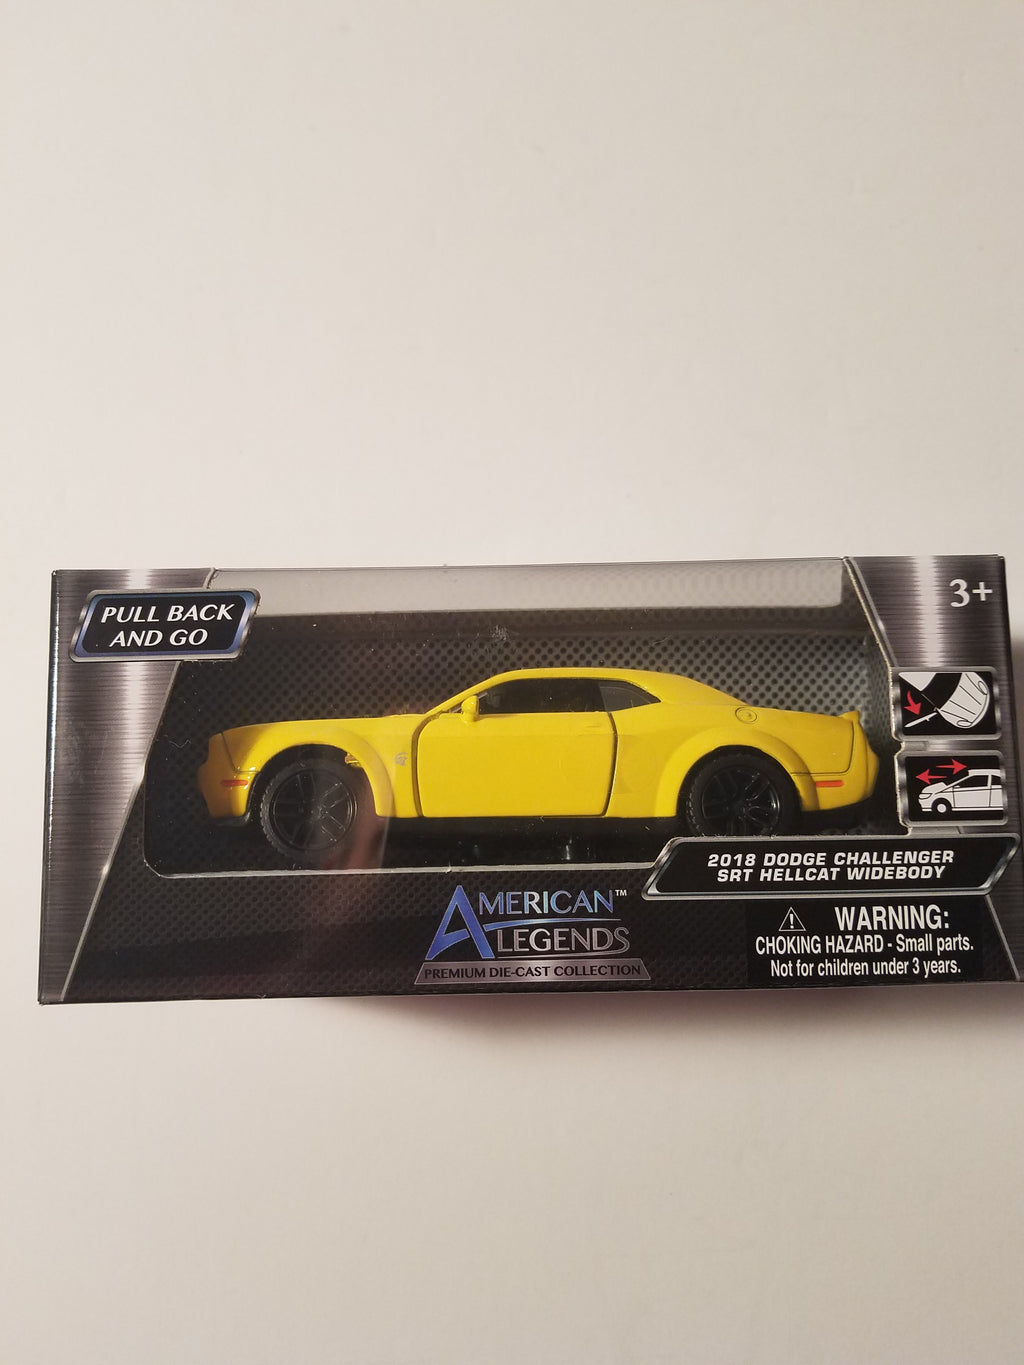 American Legends 2018 Yellow DODGE CHALLENGER SRT HELLCAT WIDEBODY 1/43 Scale